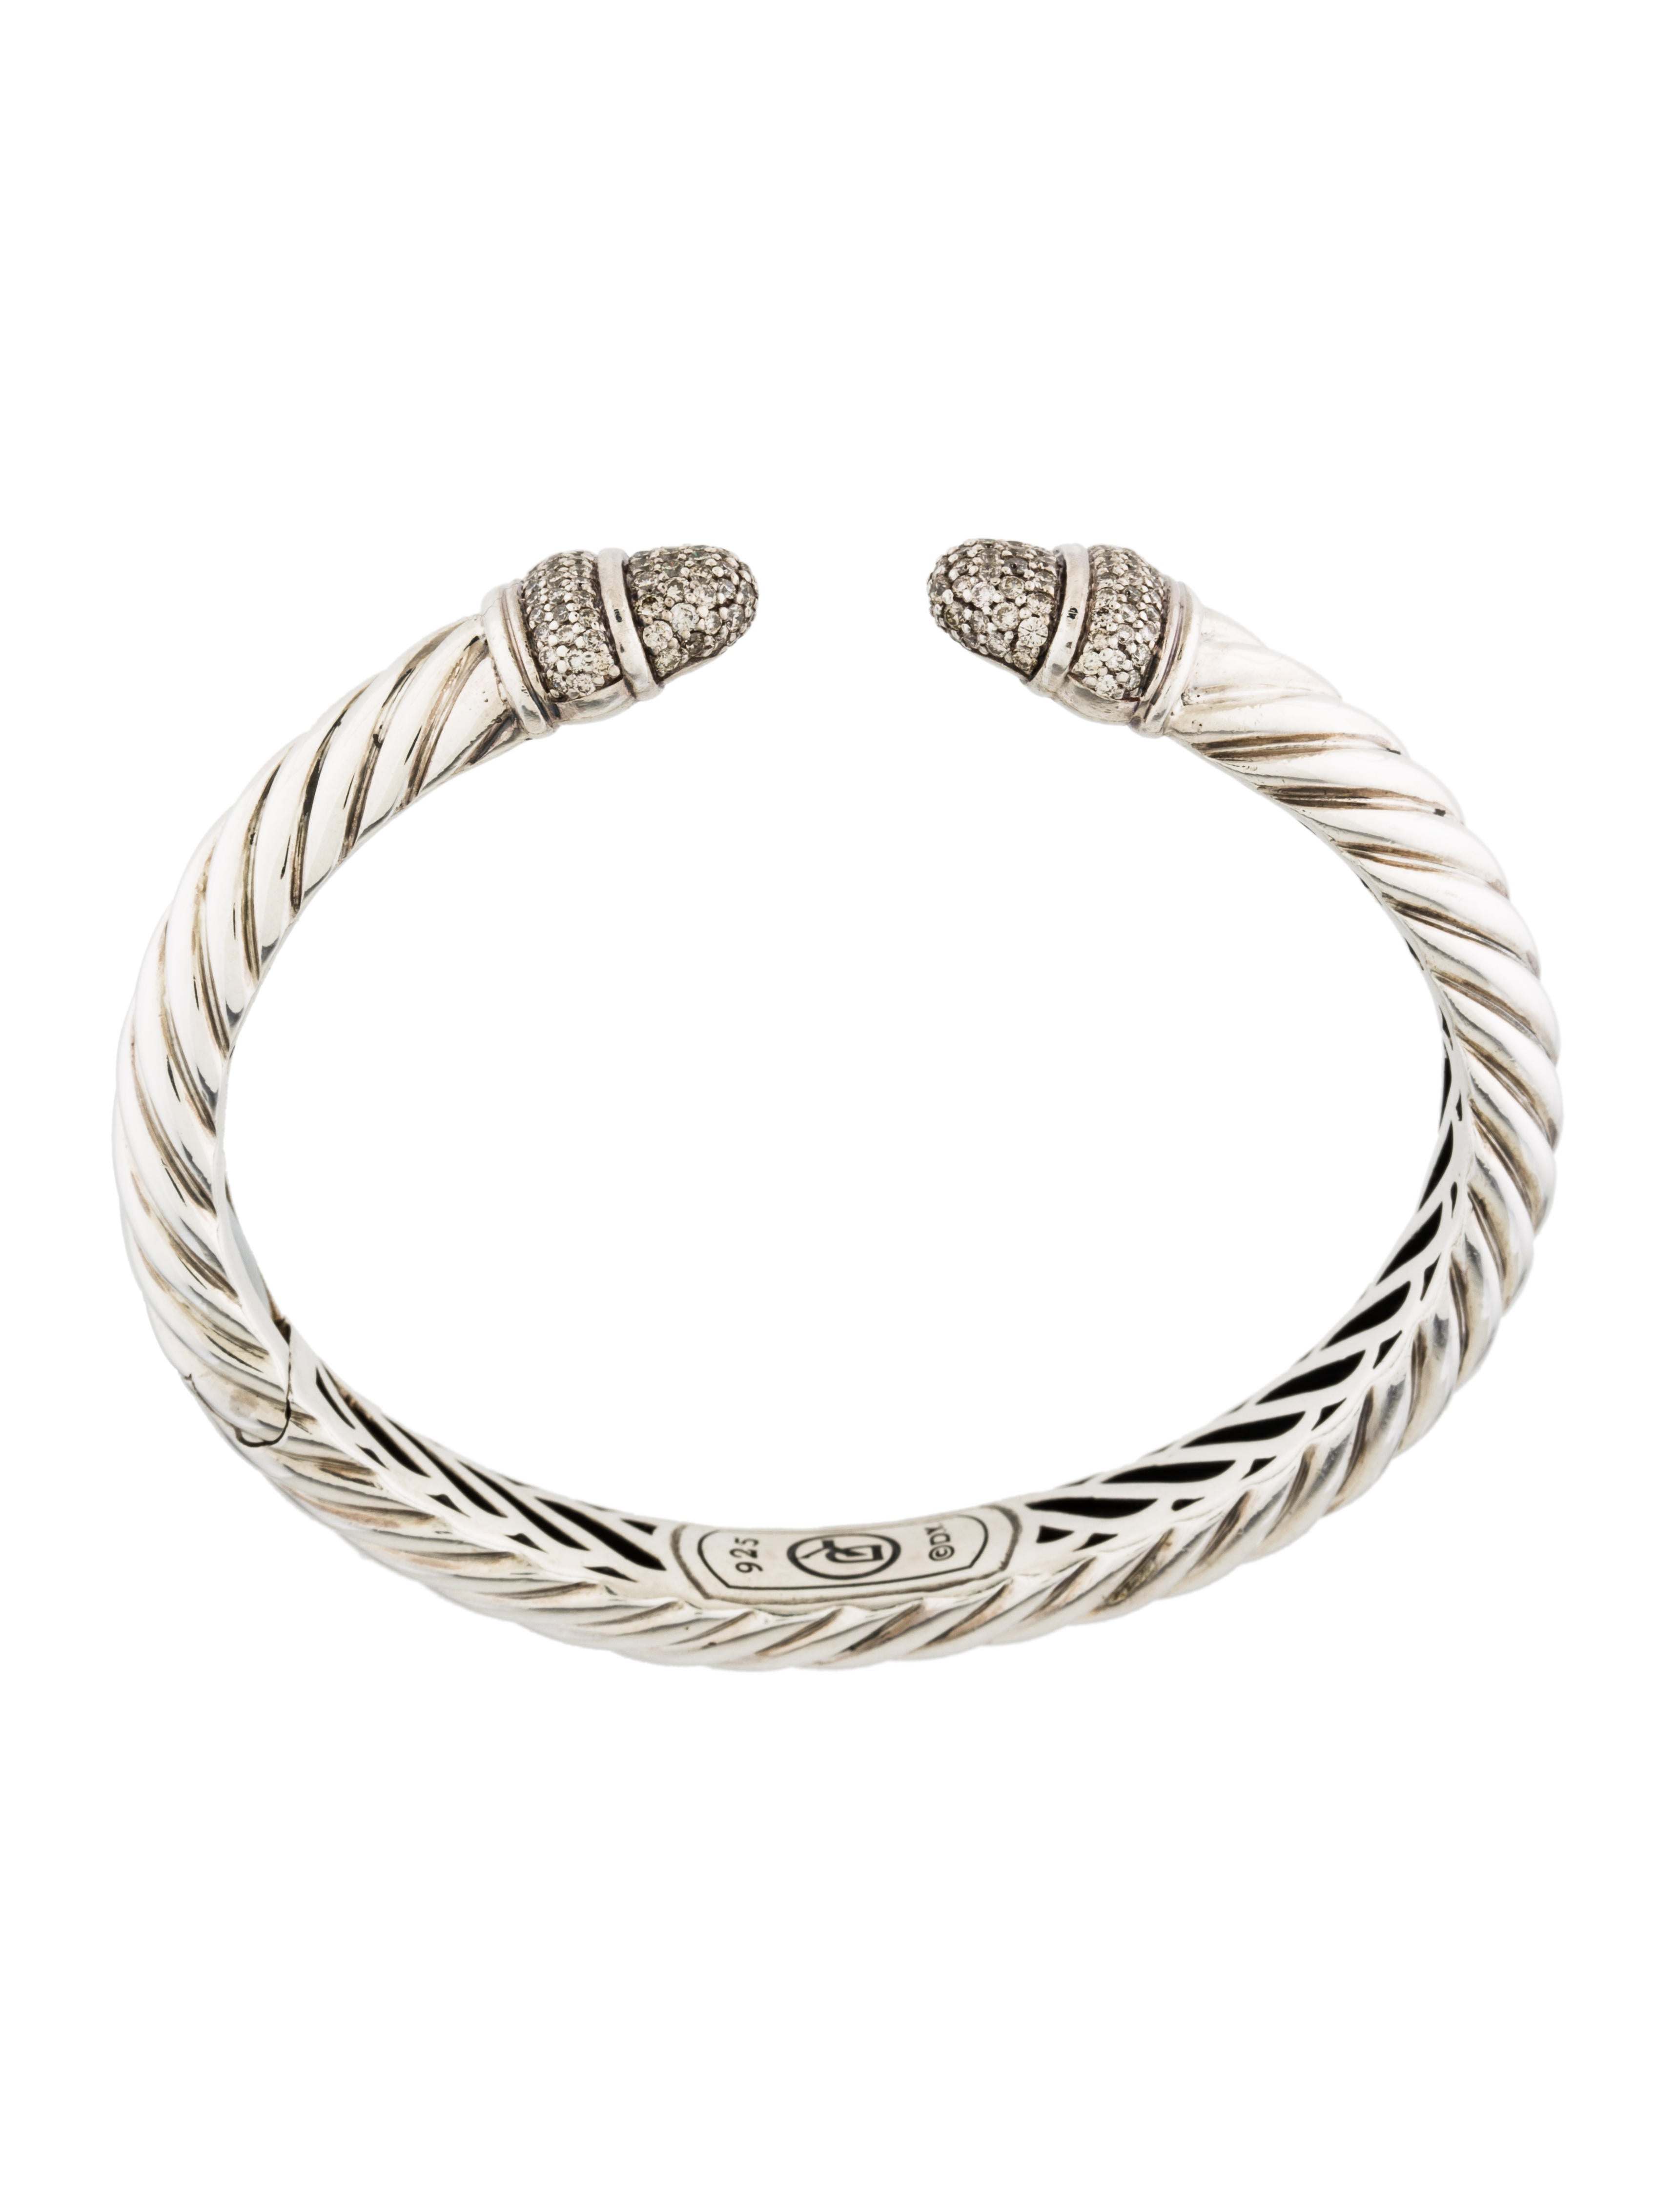 David yurman diamond sculpted cable bracelet bracelets for David yurman inspired bracelet cable